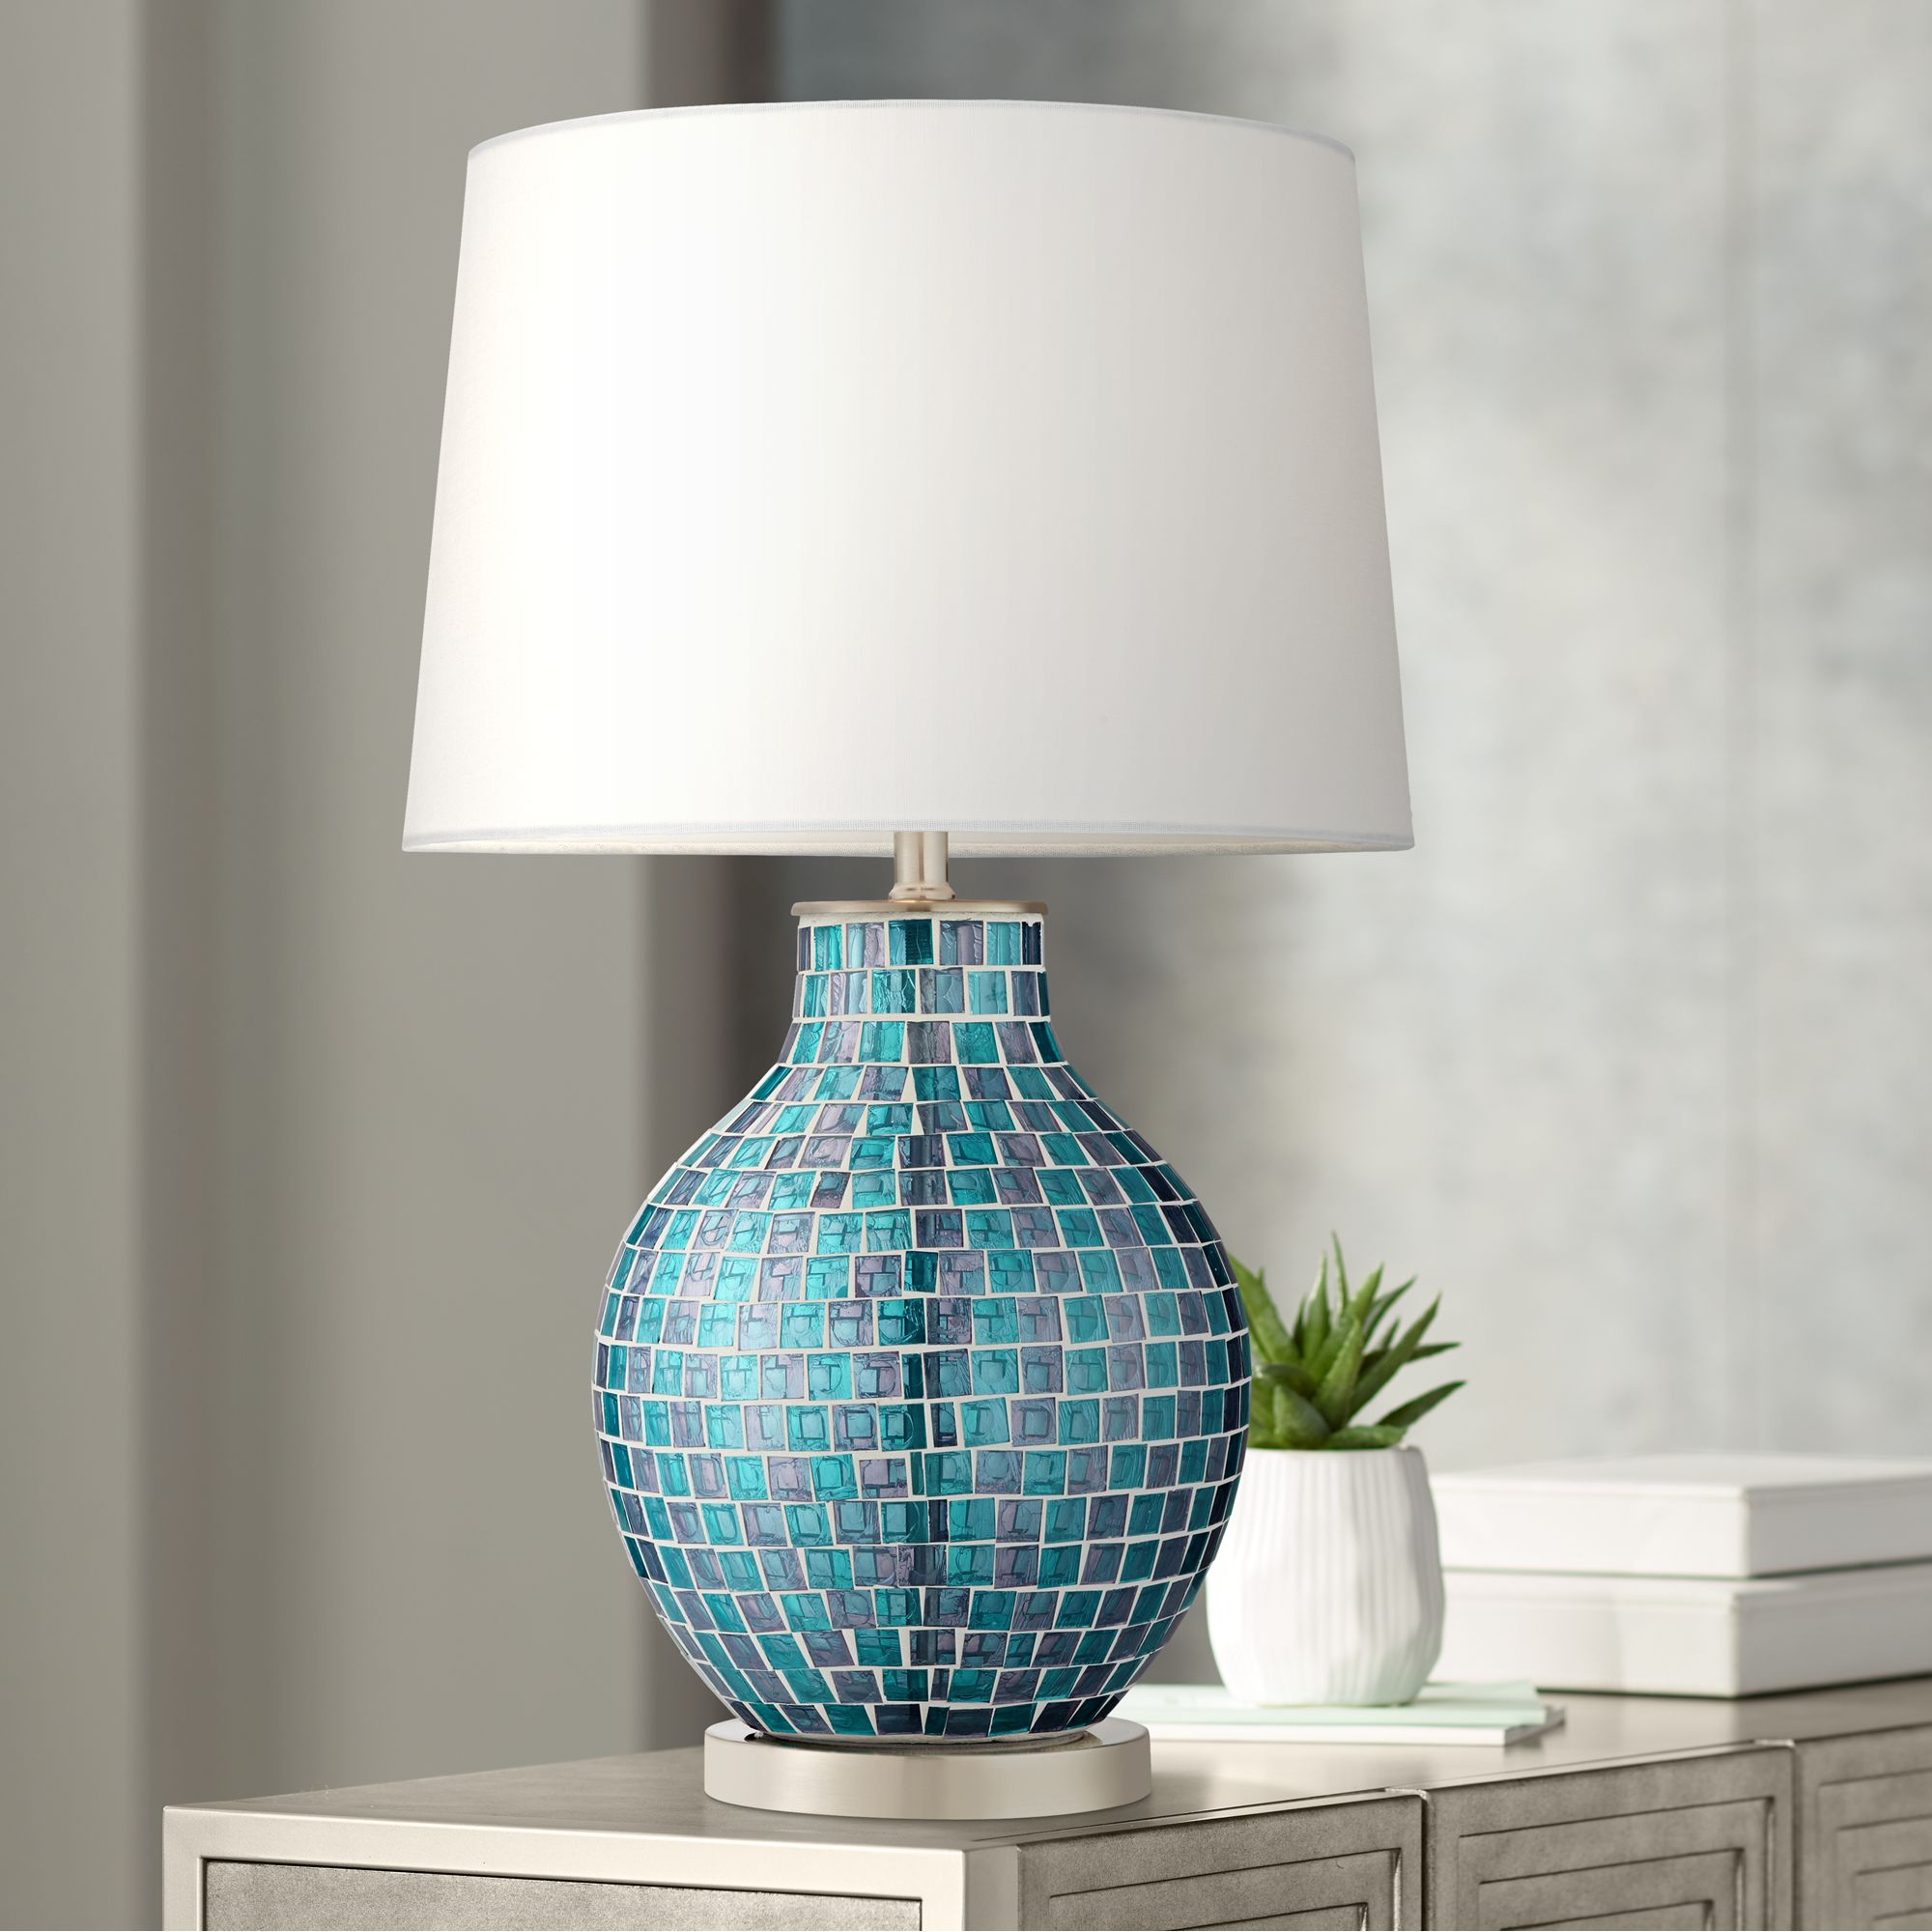 360 lighting modern table lamp mosaic teal tiles glass jar shaped white drum shade for living room family bedroom bedside walmart com